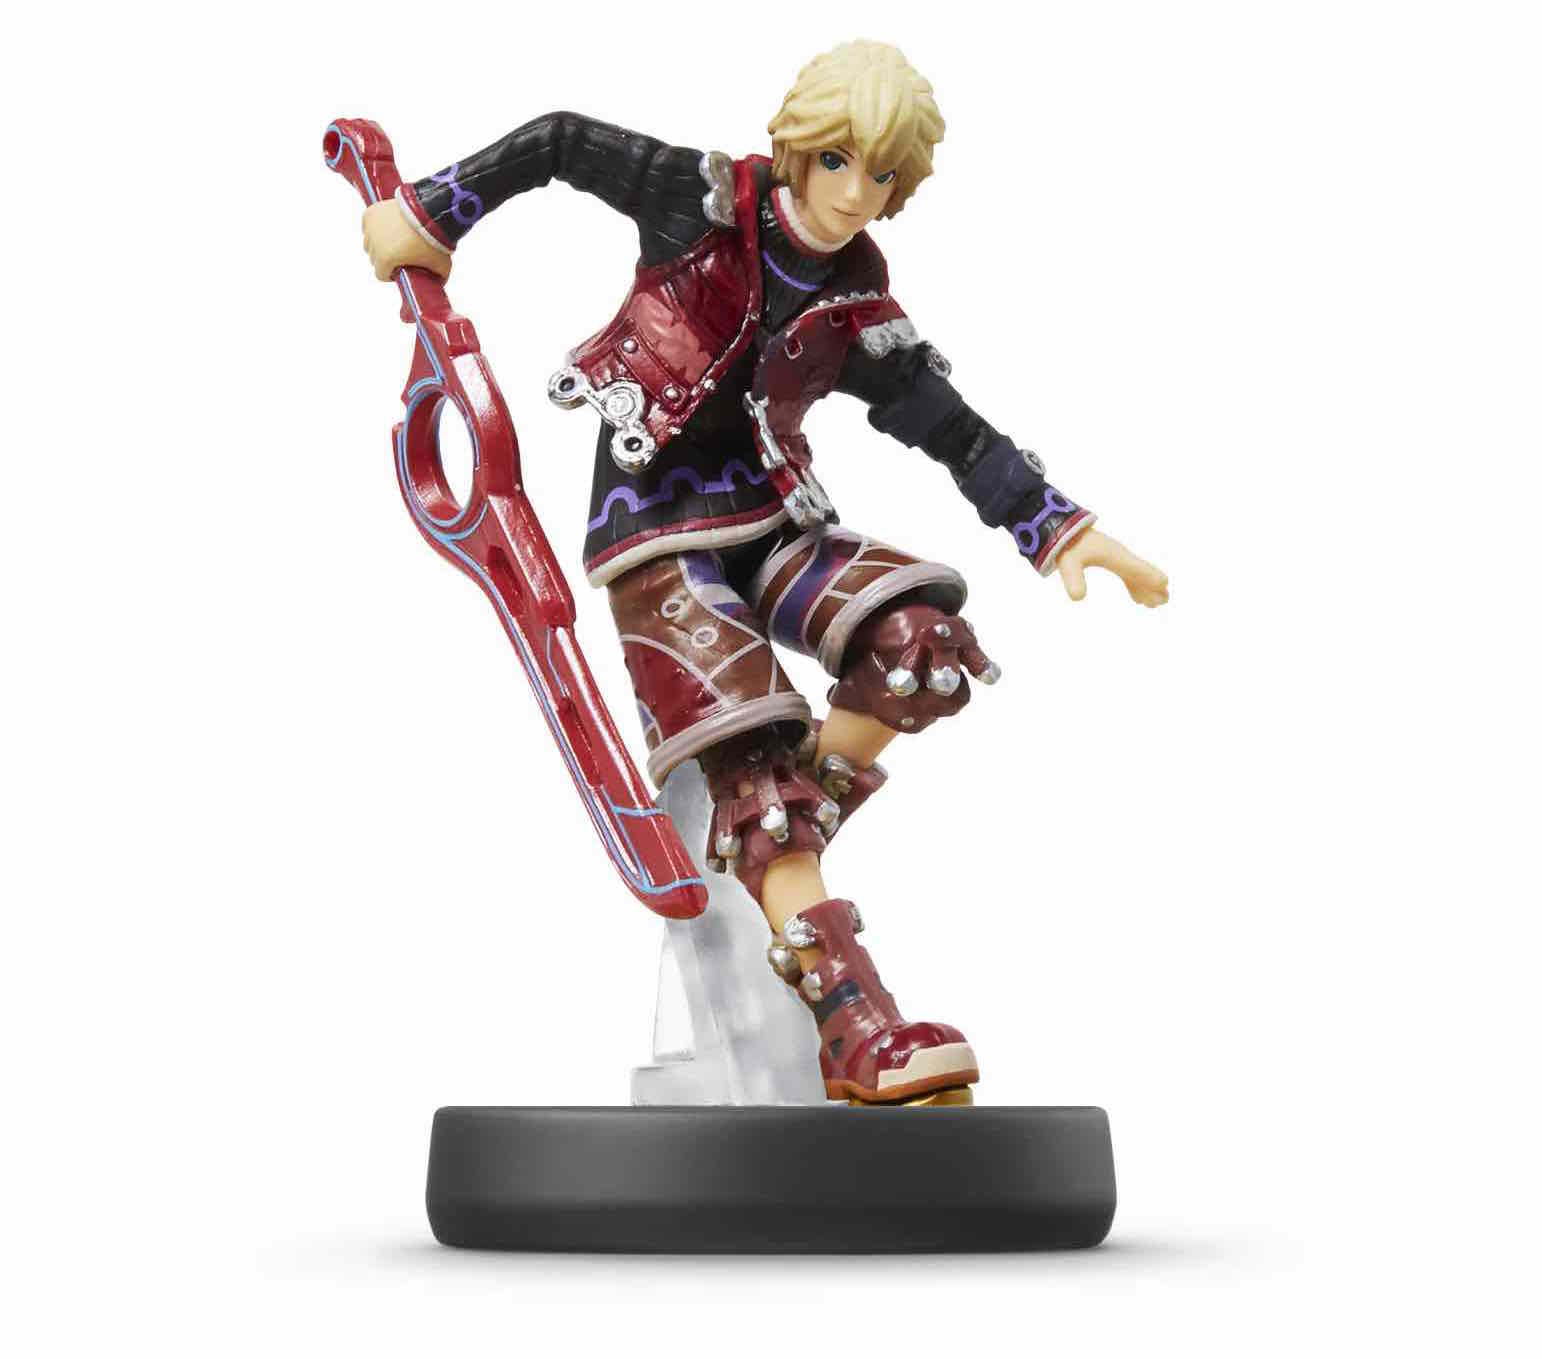 shulk-amiibo-figure